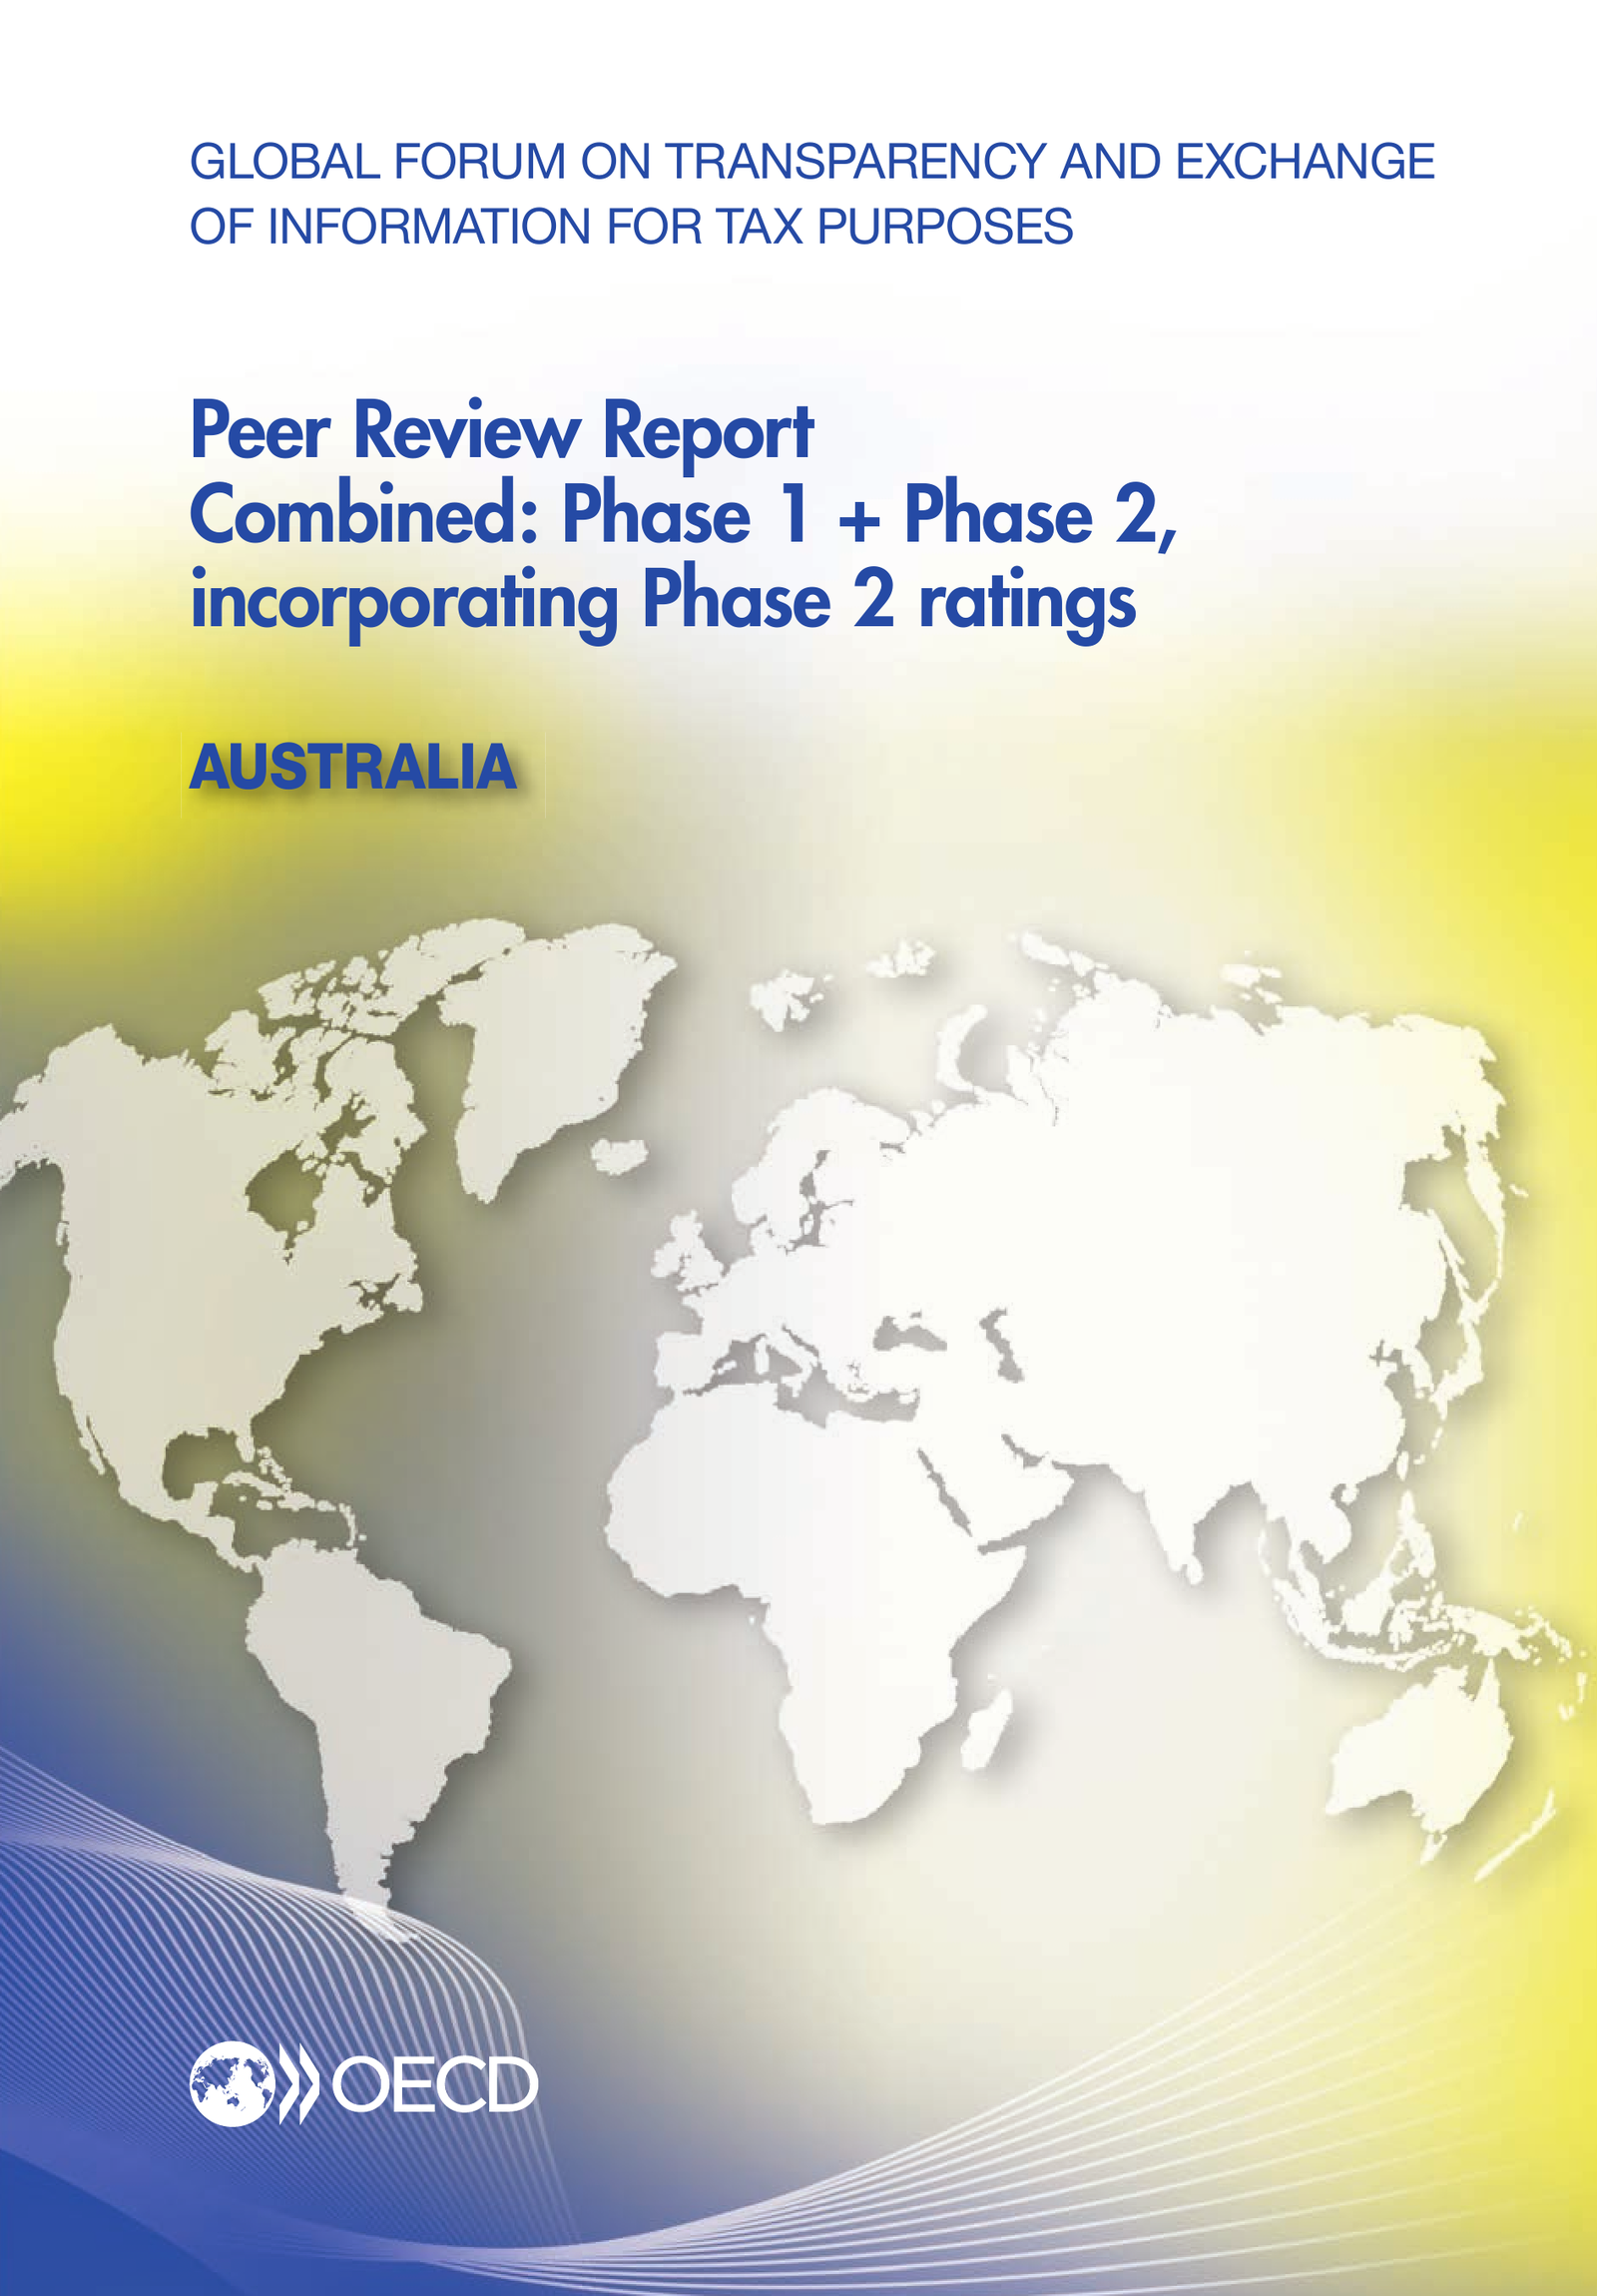 Global Forum on Transparency and Exchange of Information for Tax Purposes Peer Reviews: Australia 2013